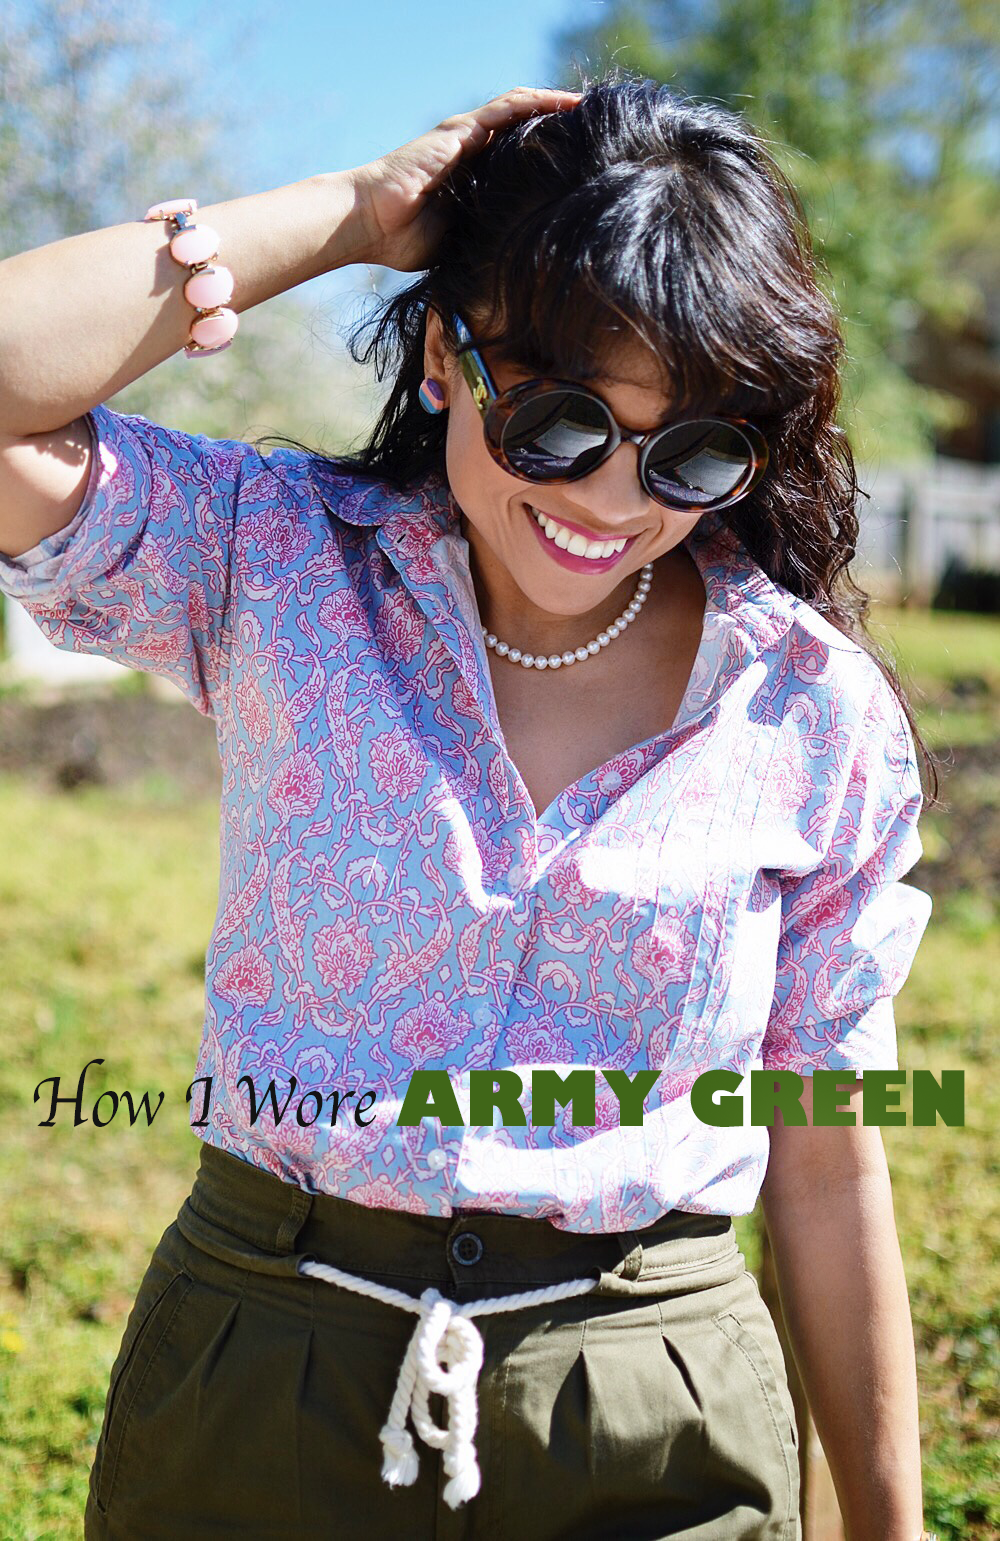 How to wear army green